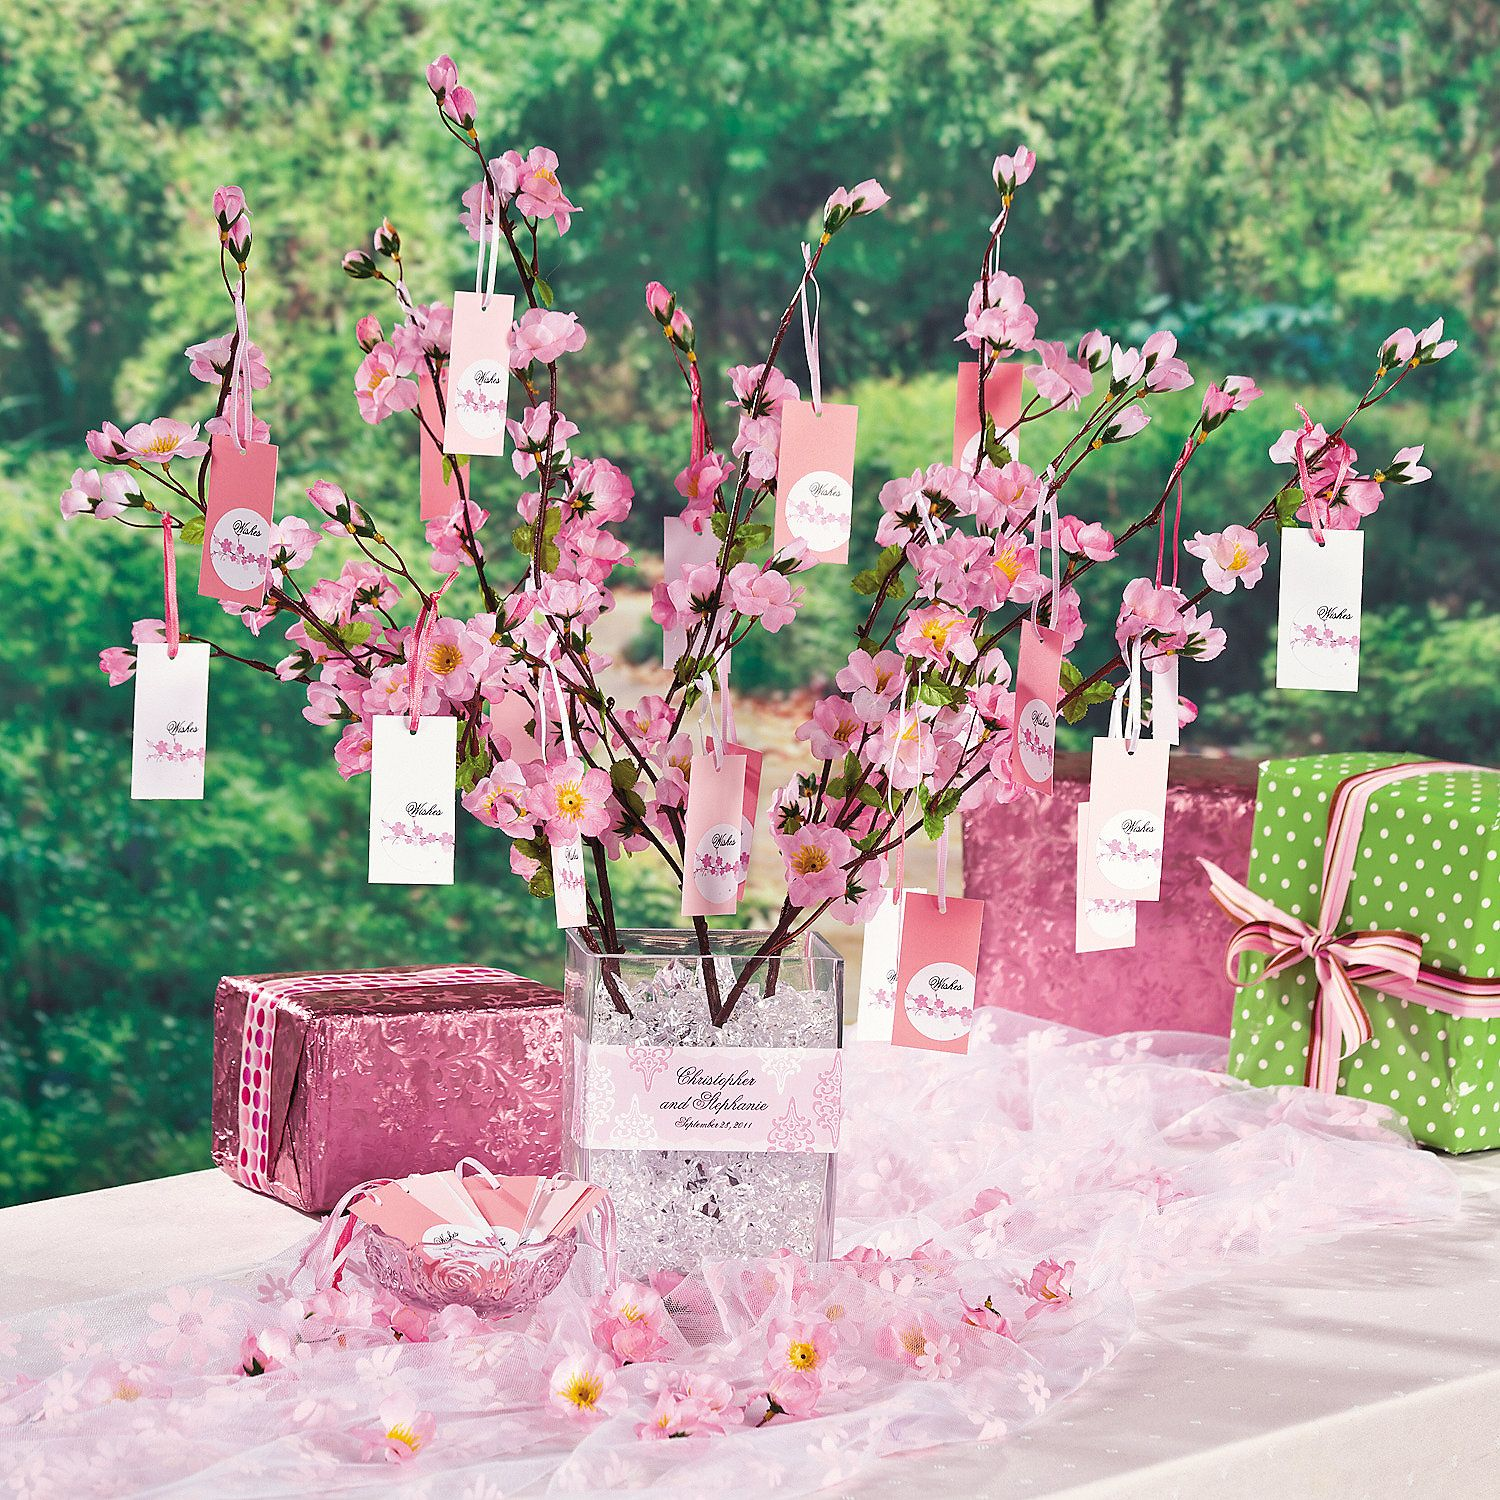 Tree Themed Wedding Ideas: Create A Lovely Table Centerpiece To Complete Your Cherry